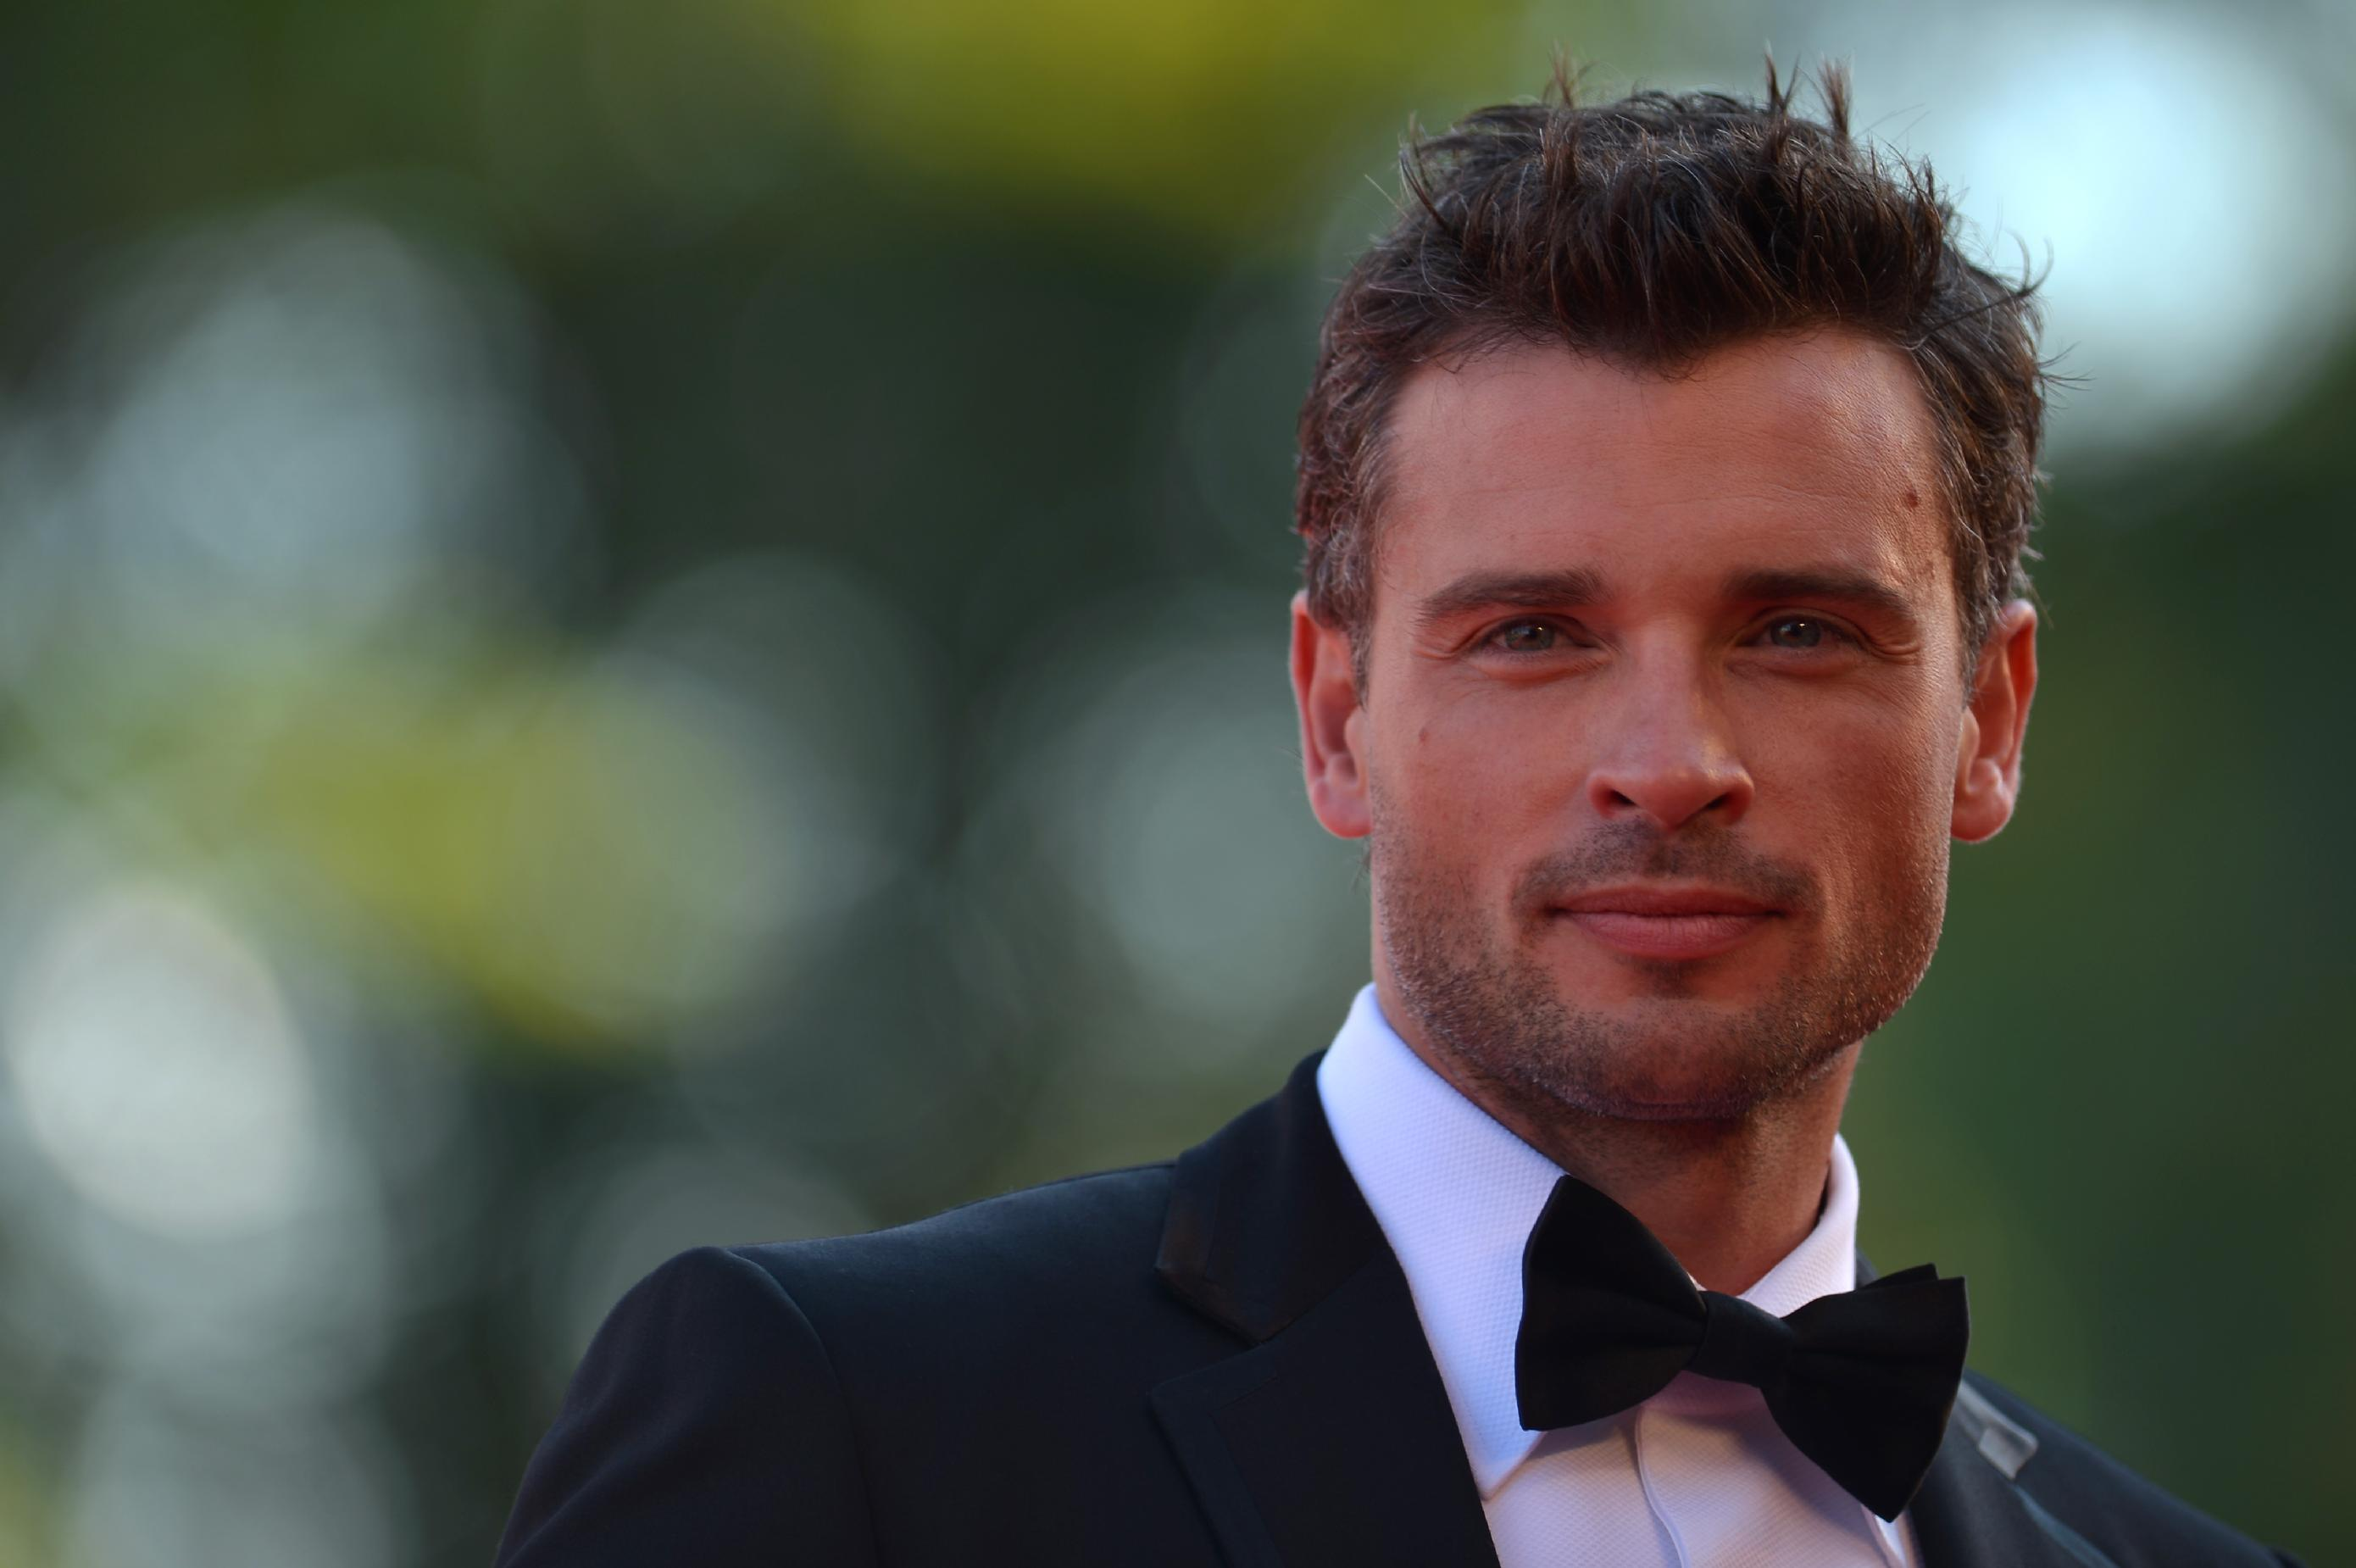 tom welling wedding pictures - HD 2780×1850